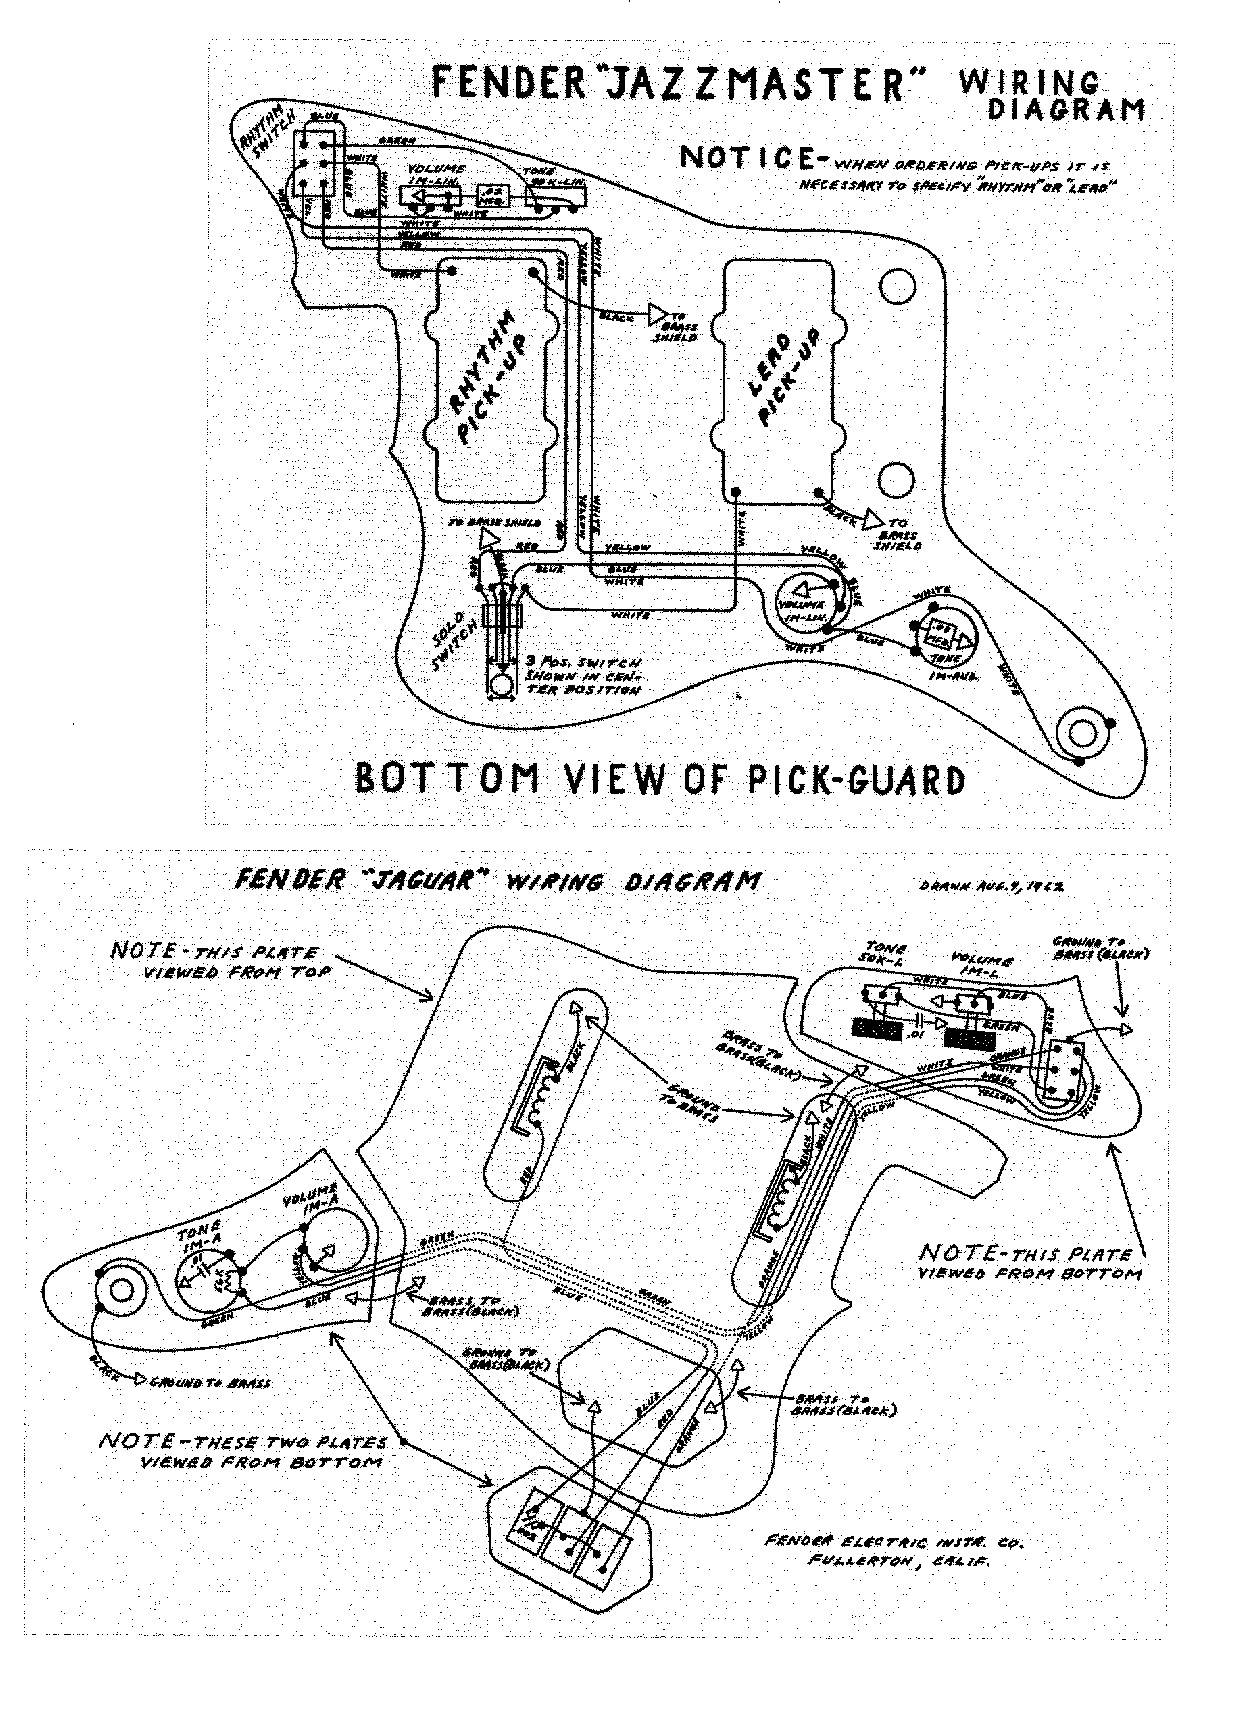 the jazzmaster and jaguar page that allows for the player to have two preset volume and tone settings and to change between them by flipping a switch for an image of the schematics